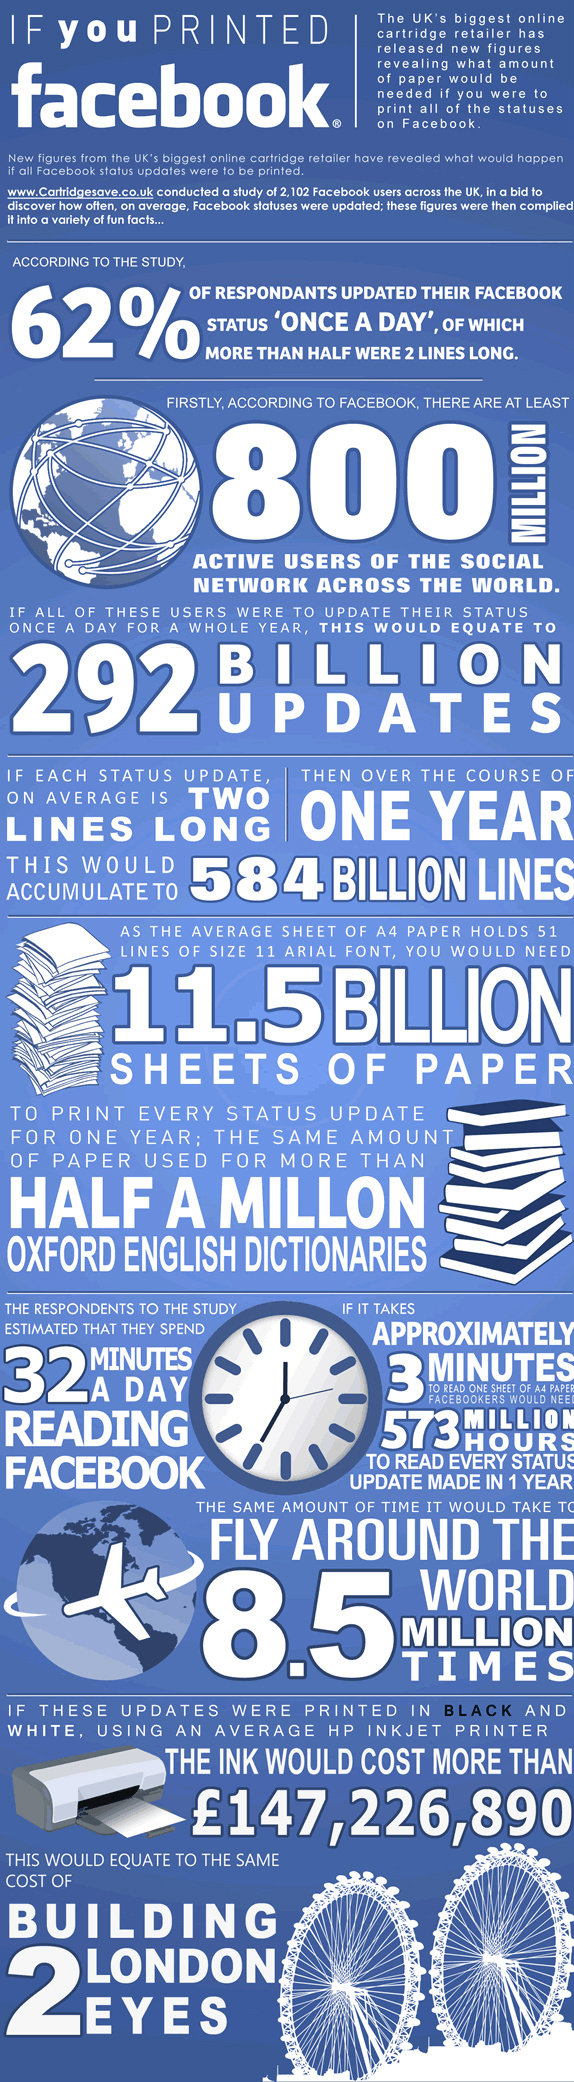 A year's worth of Facebook updates add up to 1.5 billion pages of paper [infographic]